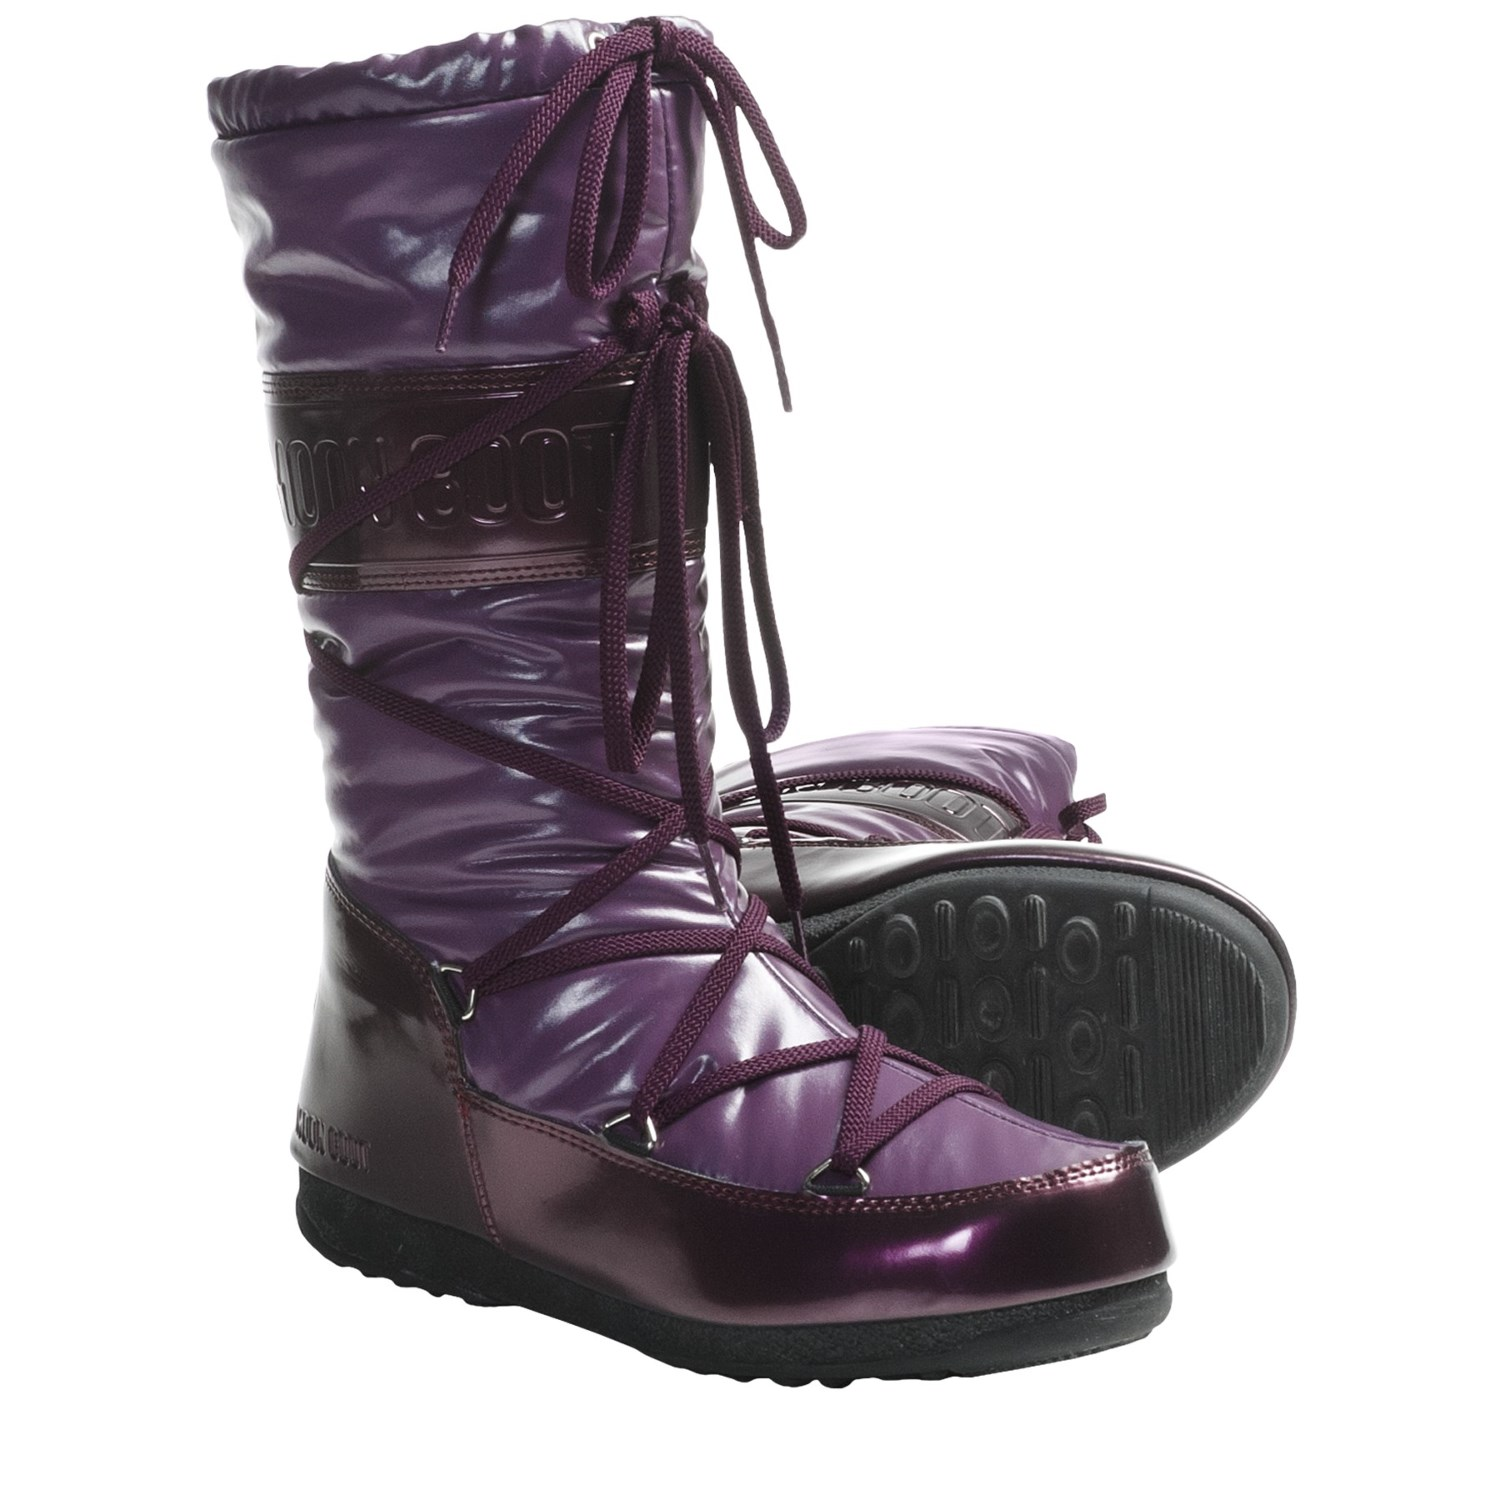 Tecnica W E Soft Moon Boots Insulated For Women